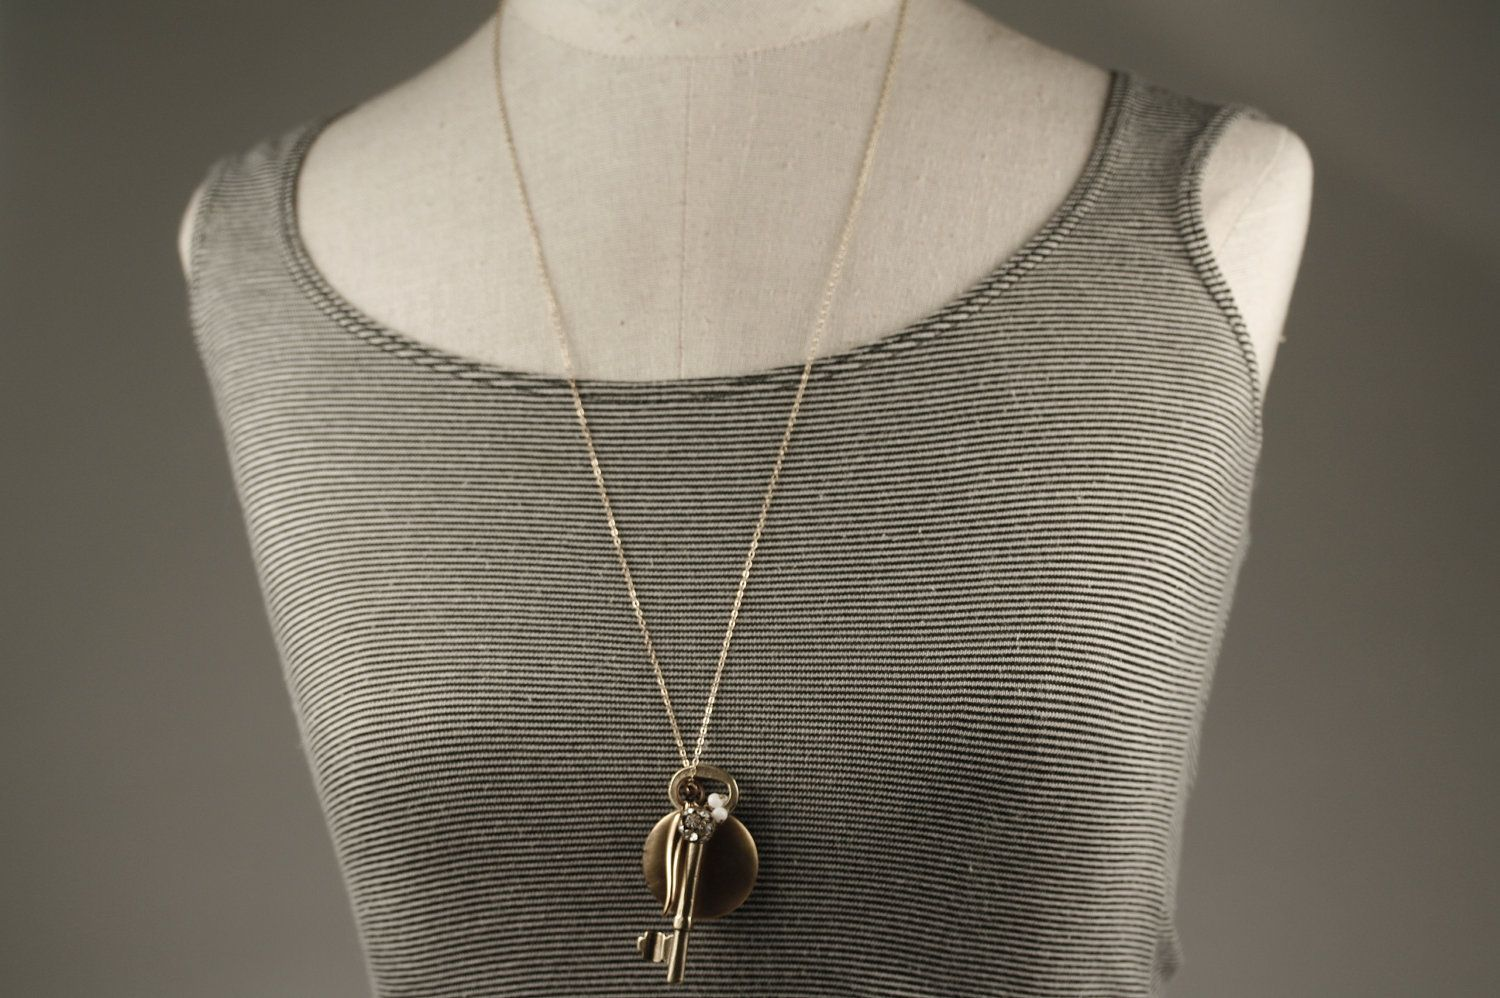 Vintage Locket and Key Charm Necklace, Gold Horn Pendant, Rhinestone Ball, 14kt Gold Filled Chain. $74.00, via Etsy.